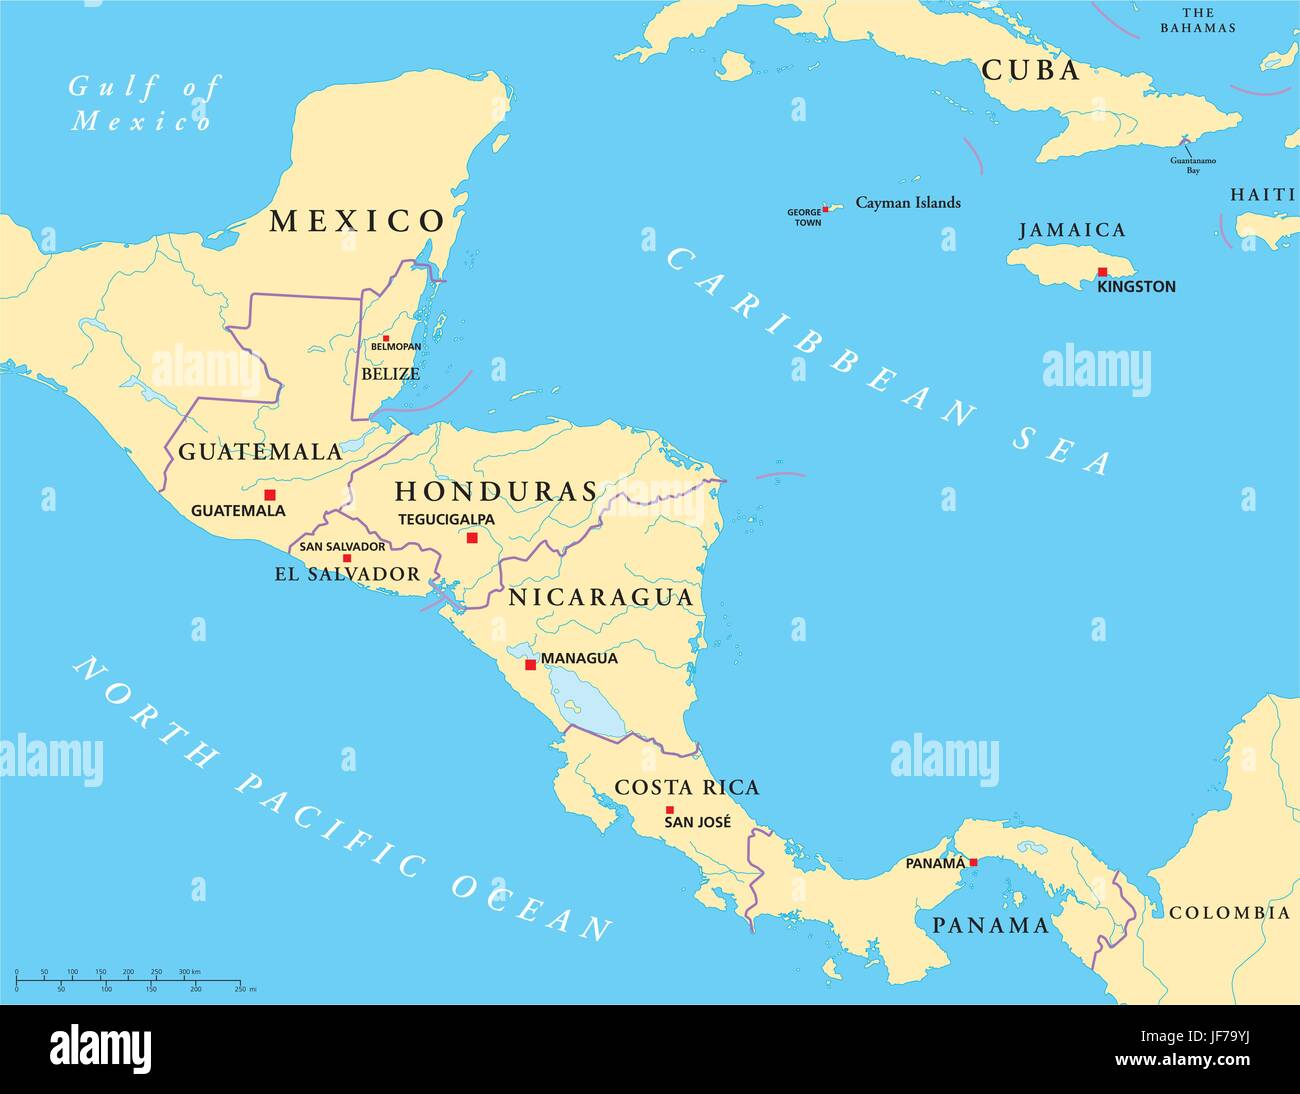 america, central america, guatemala, central, honduras, map ... on costa rica, western europe, europe map, canada map, africa map, south america, carribean map, united states of america, cuba map, greater antilles, caribbean sea, florida map, caribbean map, guatemala map, latin america, north africa, north america, greater antilles map, lesser antilles, haiti map, san salvador, japan map, united states map, honduras map, australia map, uruguay map, the americas map, texas map, panama map, brazil map, el salvador, jamaica map, indigenous peoples of the americas,